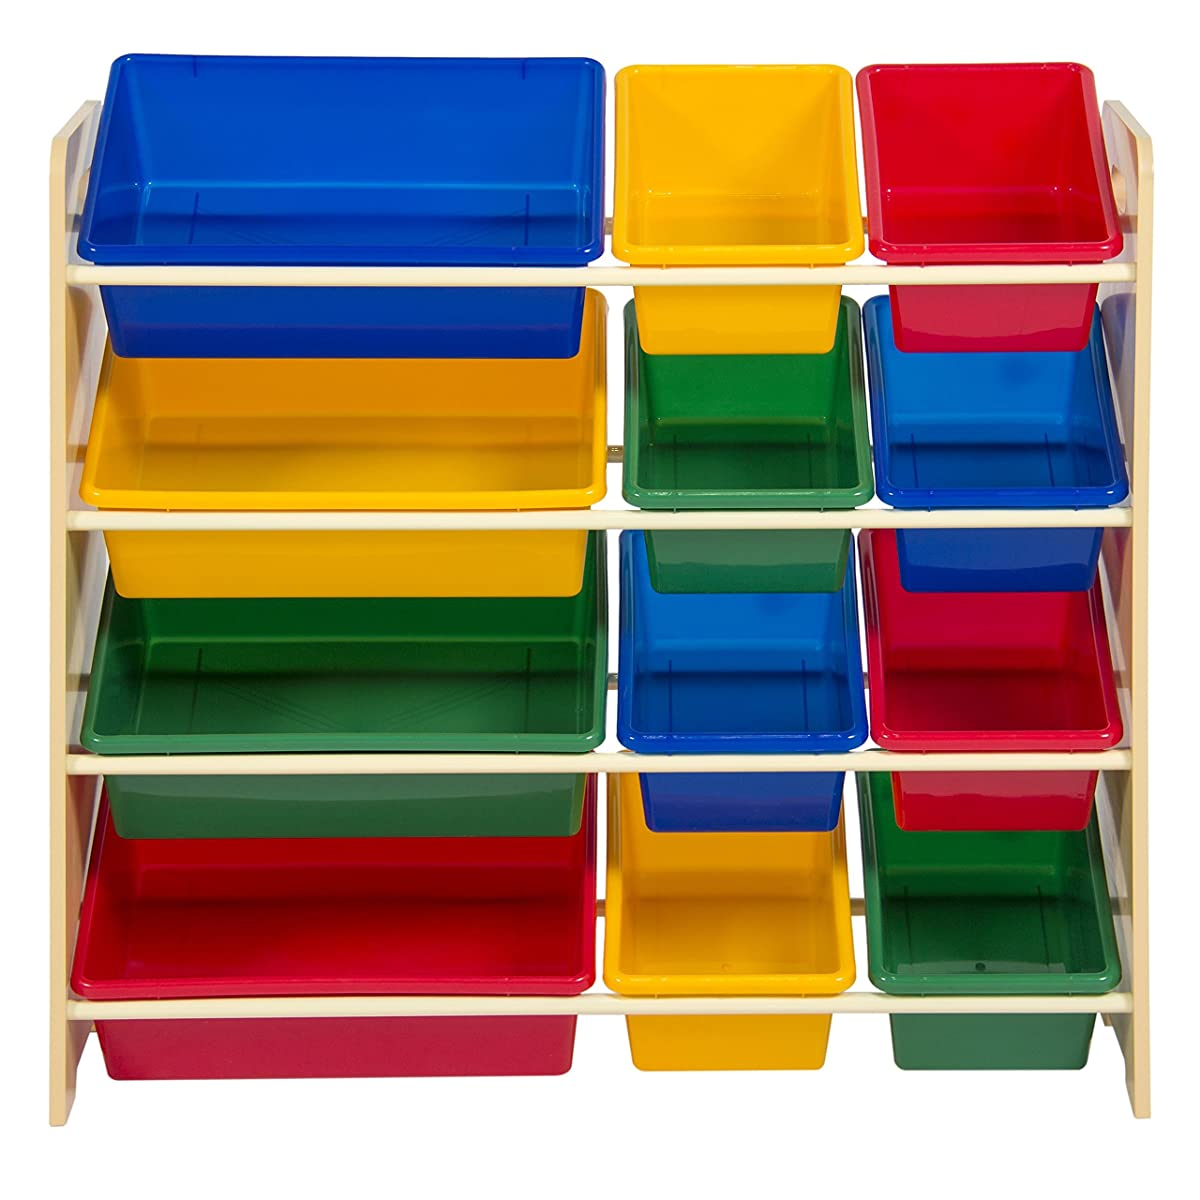 10 Types Of Toy Organizers For Kids Bedrooms And Playrooms: Best Choice Products Toy Bin Organizer Kids Childrens